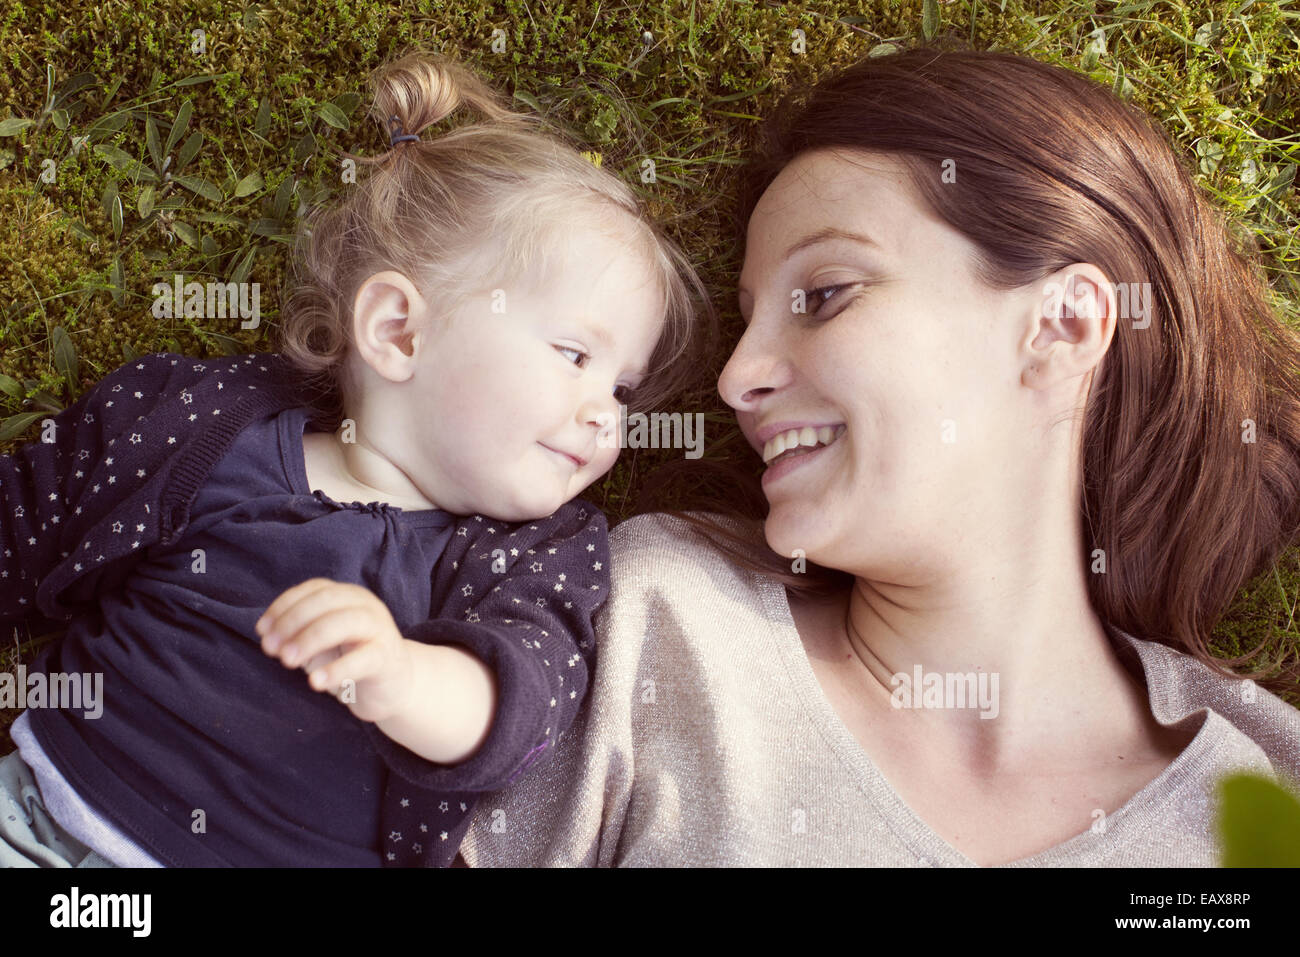 Mother and baby girl lying on grass, smiling at each other - Stock Image